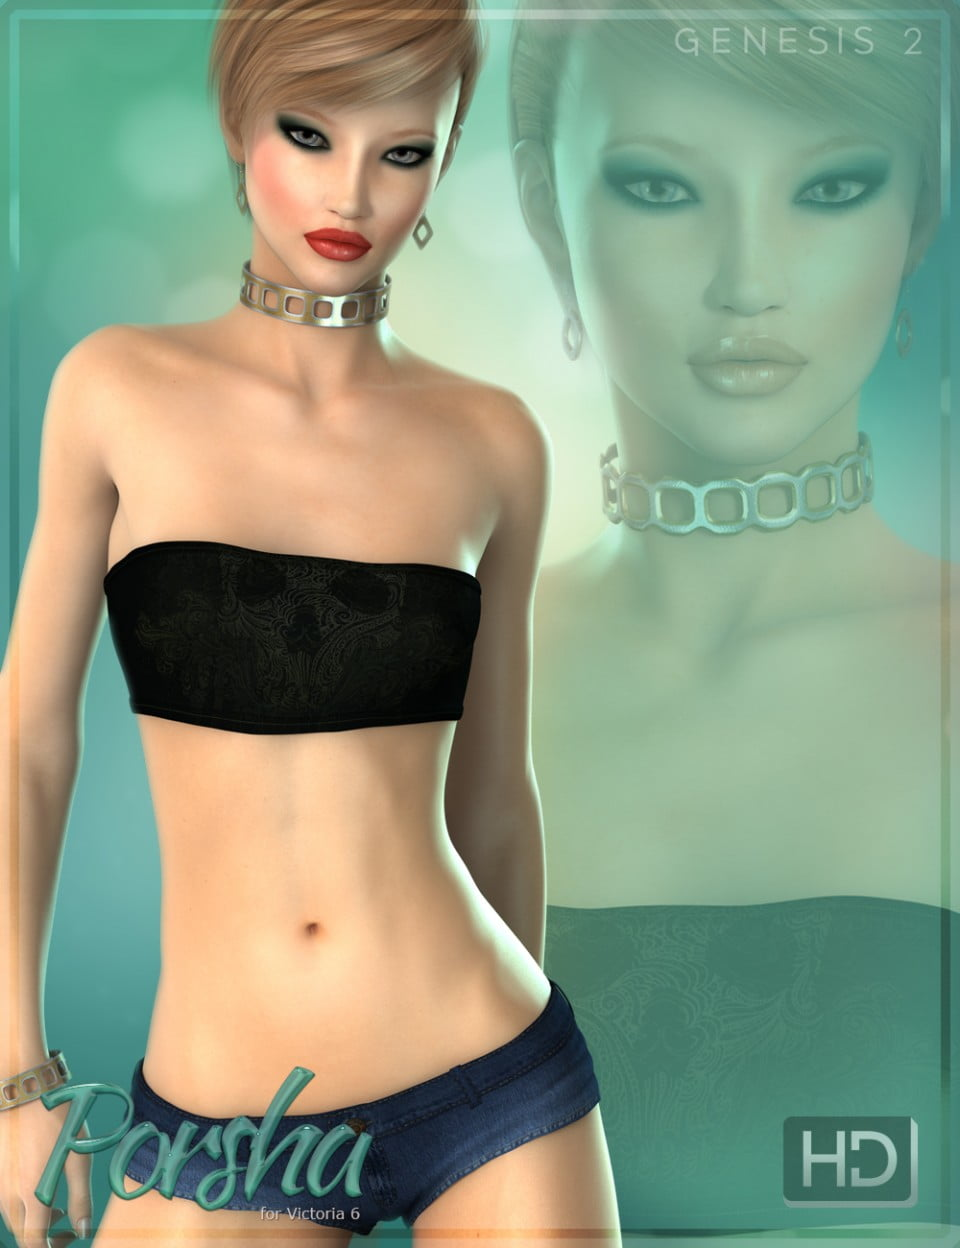 00-main-fw-porsha-hd-for-victoria-6-daz3d